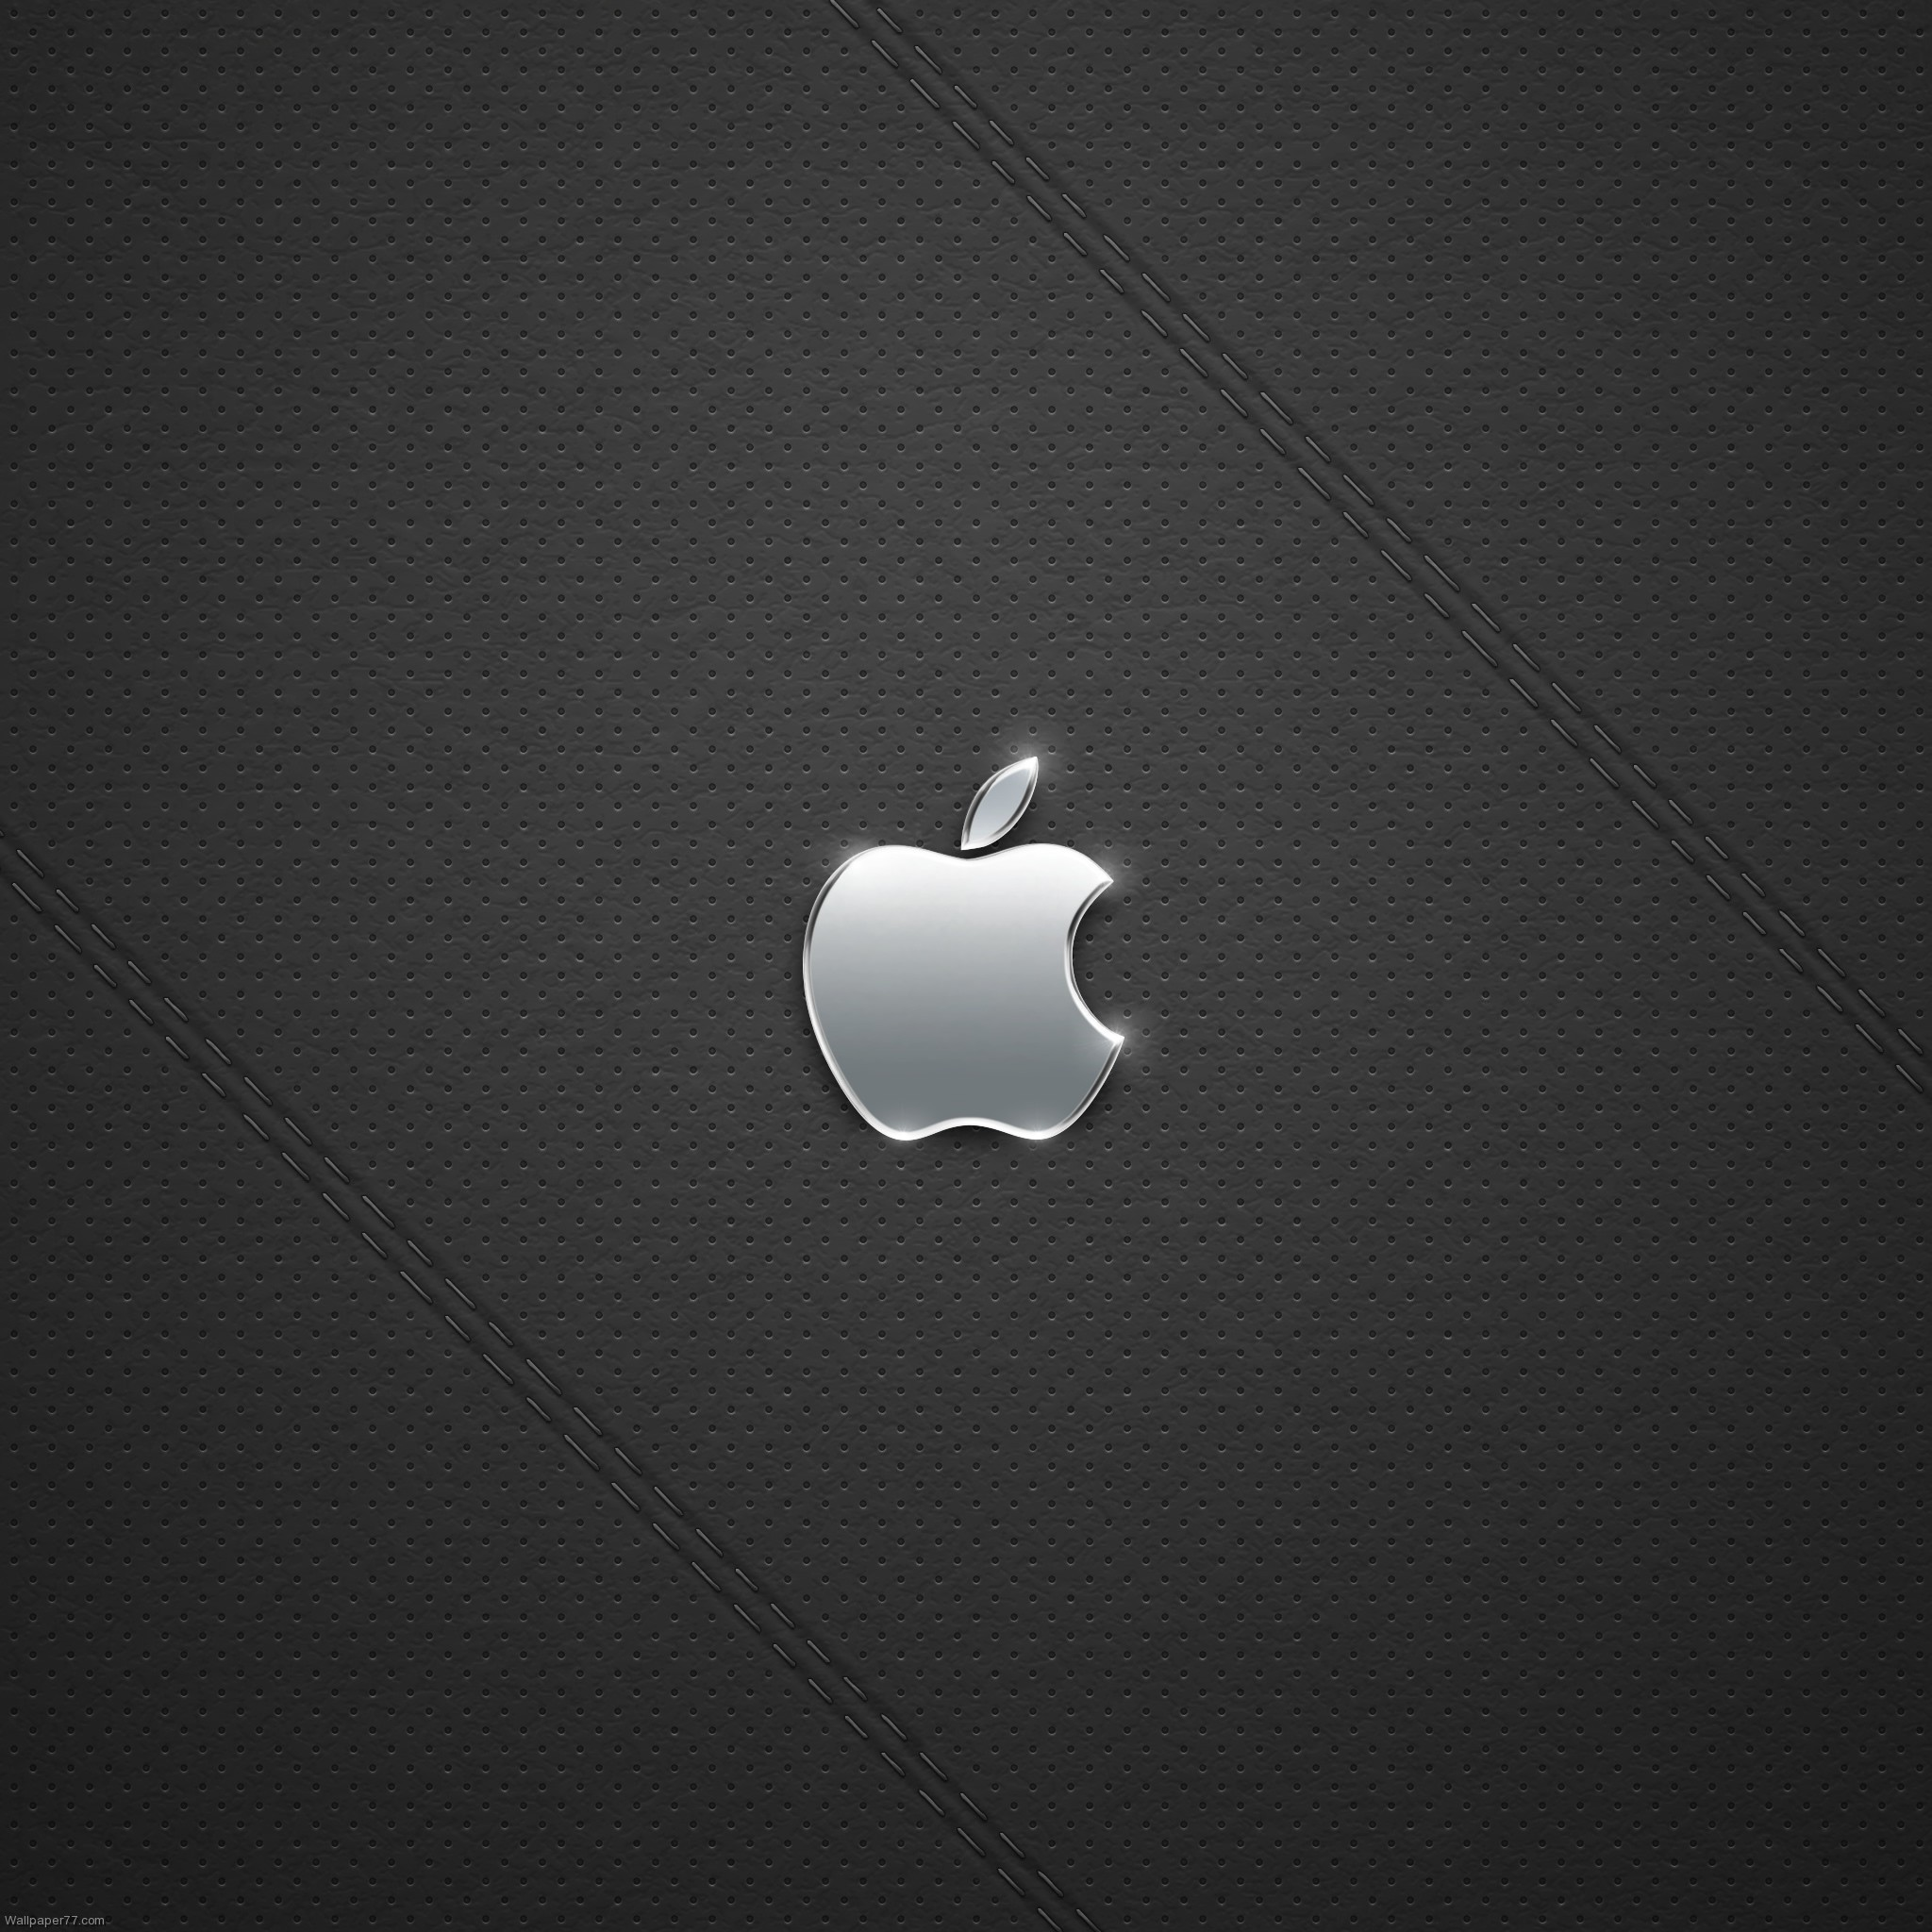 Apple Leather Logo ipad 3 wallpaper ipad wallpaper retina display 2048x2048